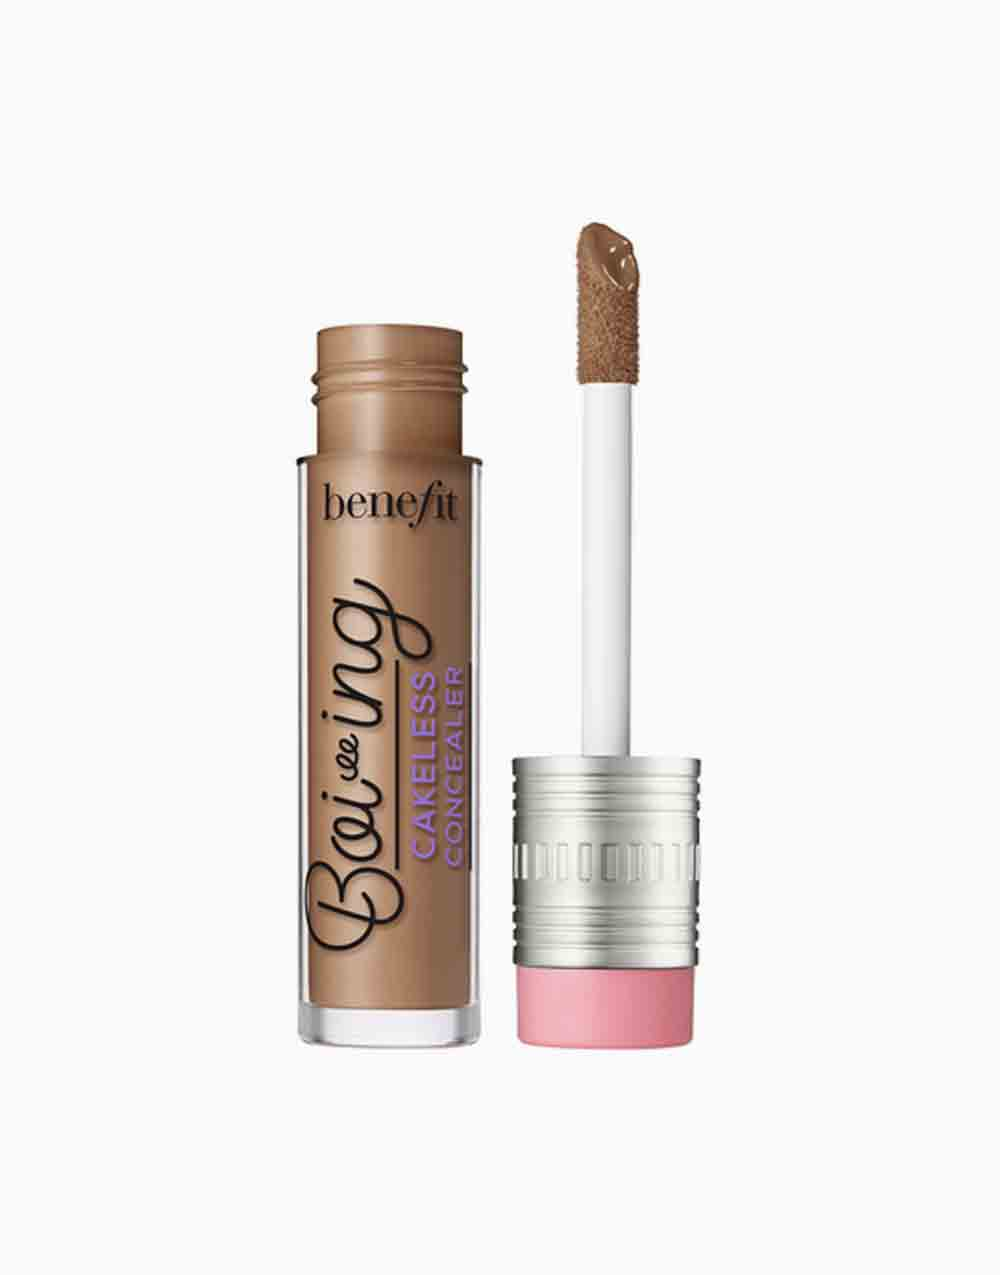 Boi-ing Cakeless Concealer by Benefit | Shade 11